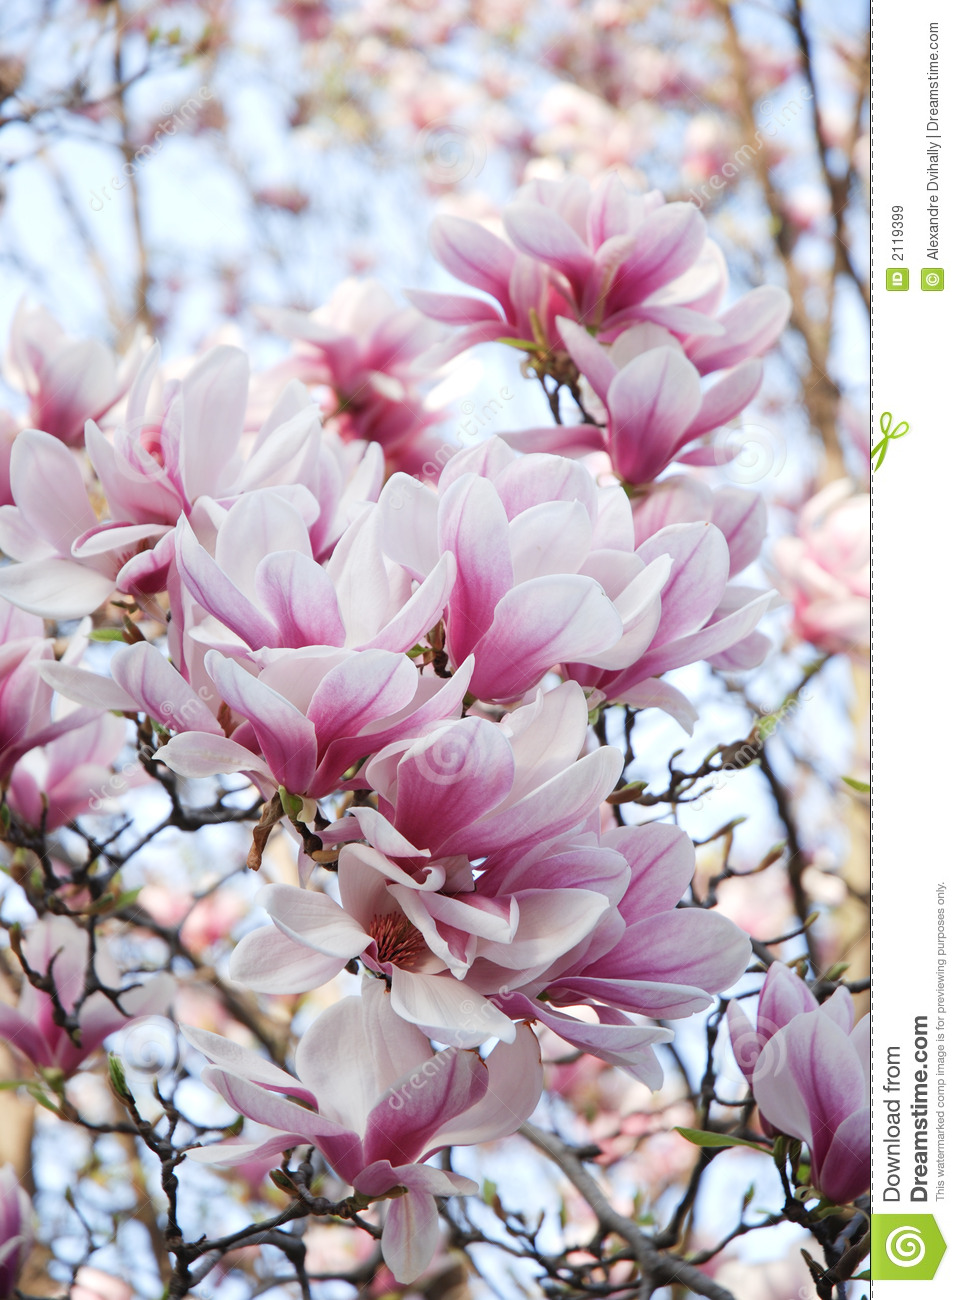 Magnolia pink flowers stock image image of sunlight branches 2119399 download comp mightylinksfo